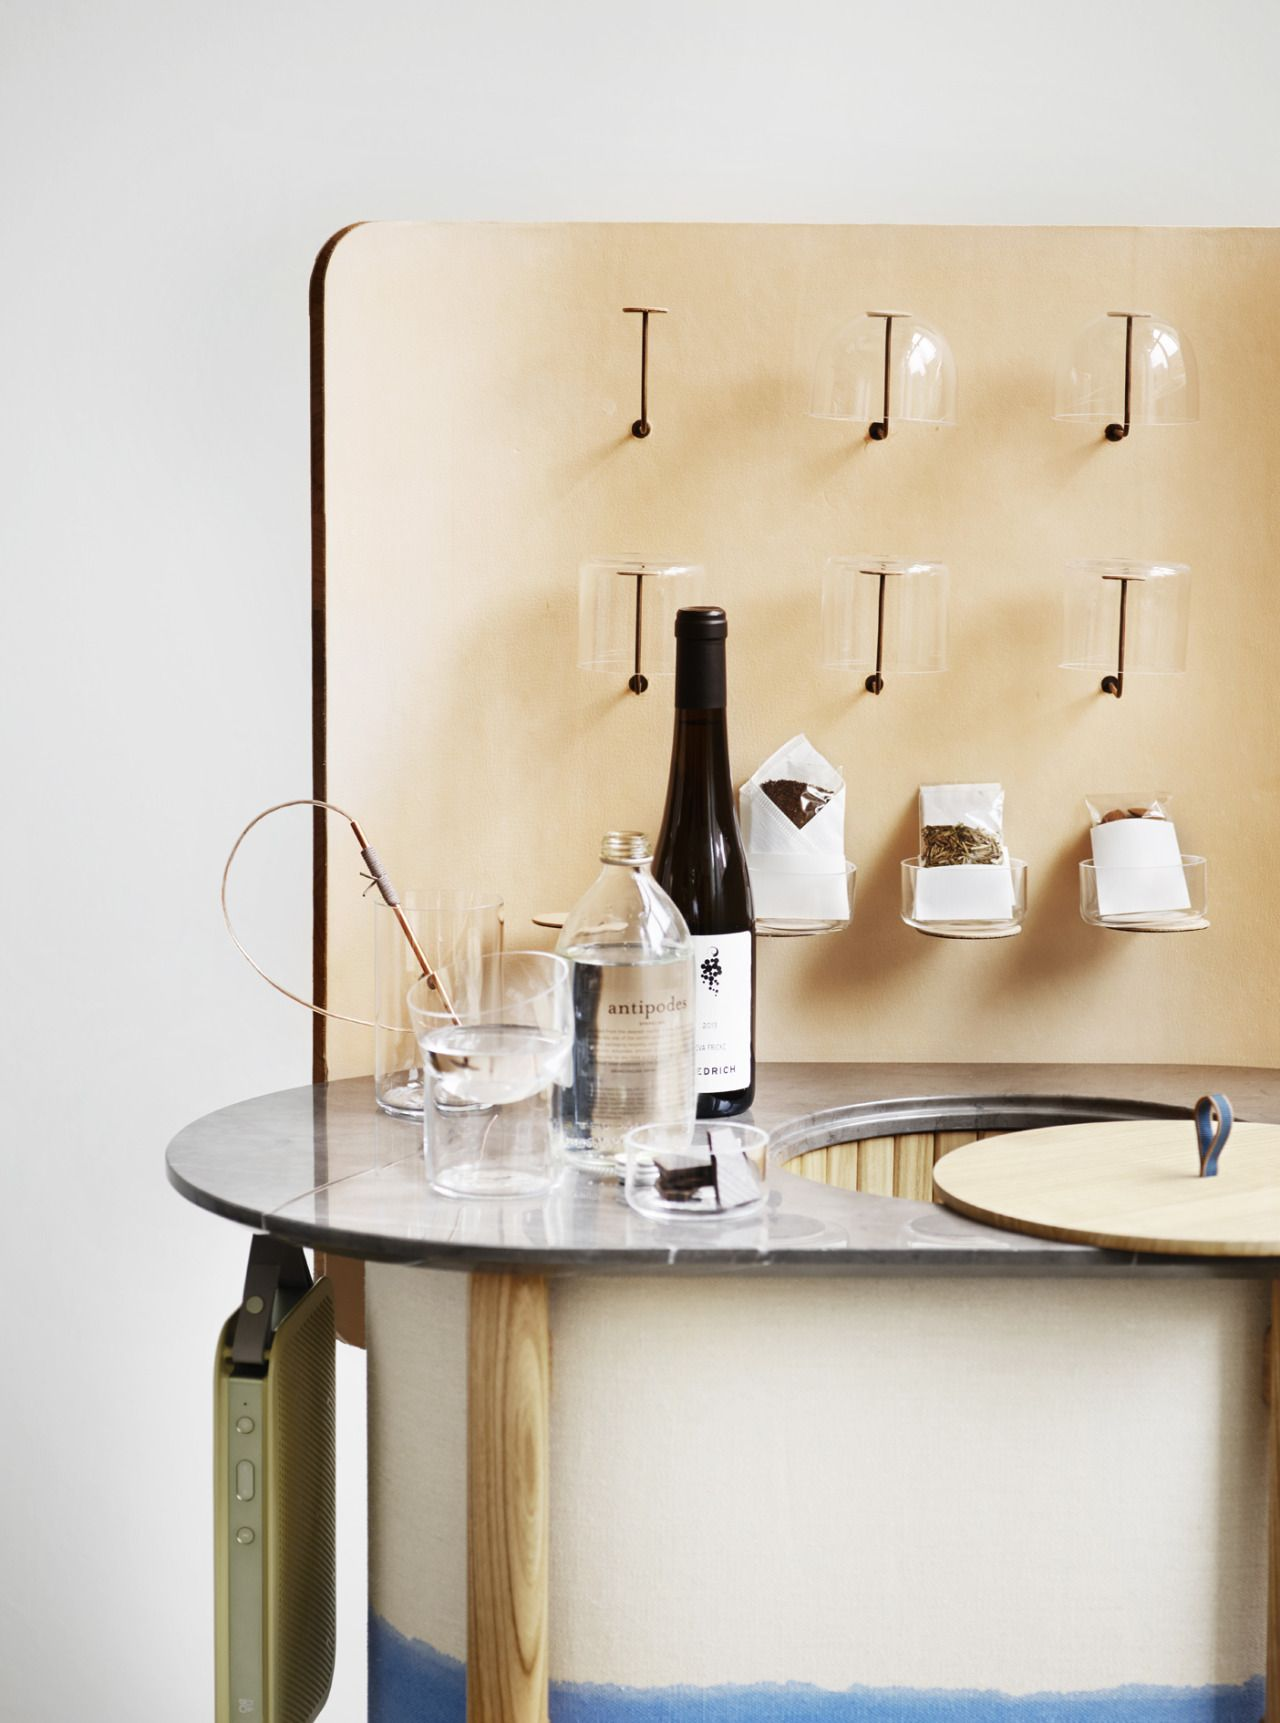 Minibar designed by Cecilie Manz and Rud. Rasmussen. From Wallpaper ...